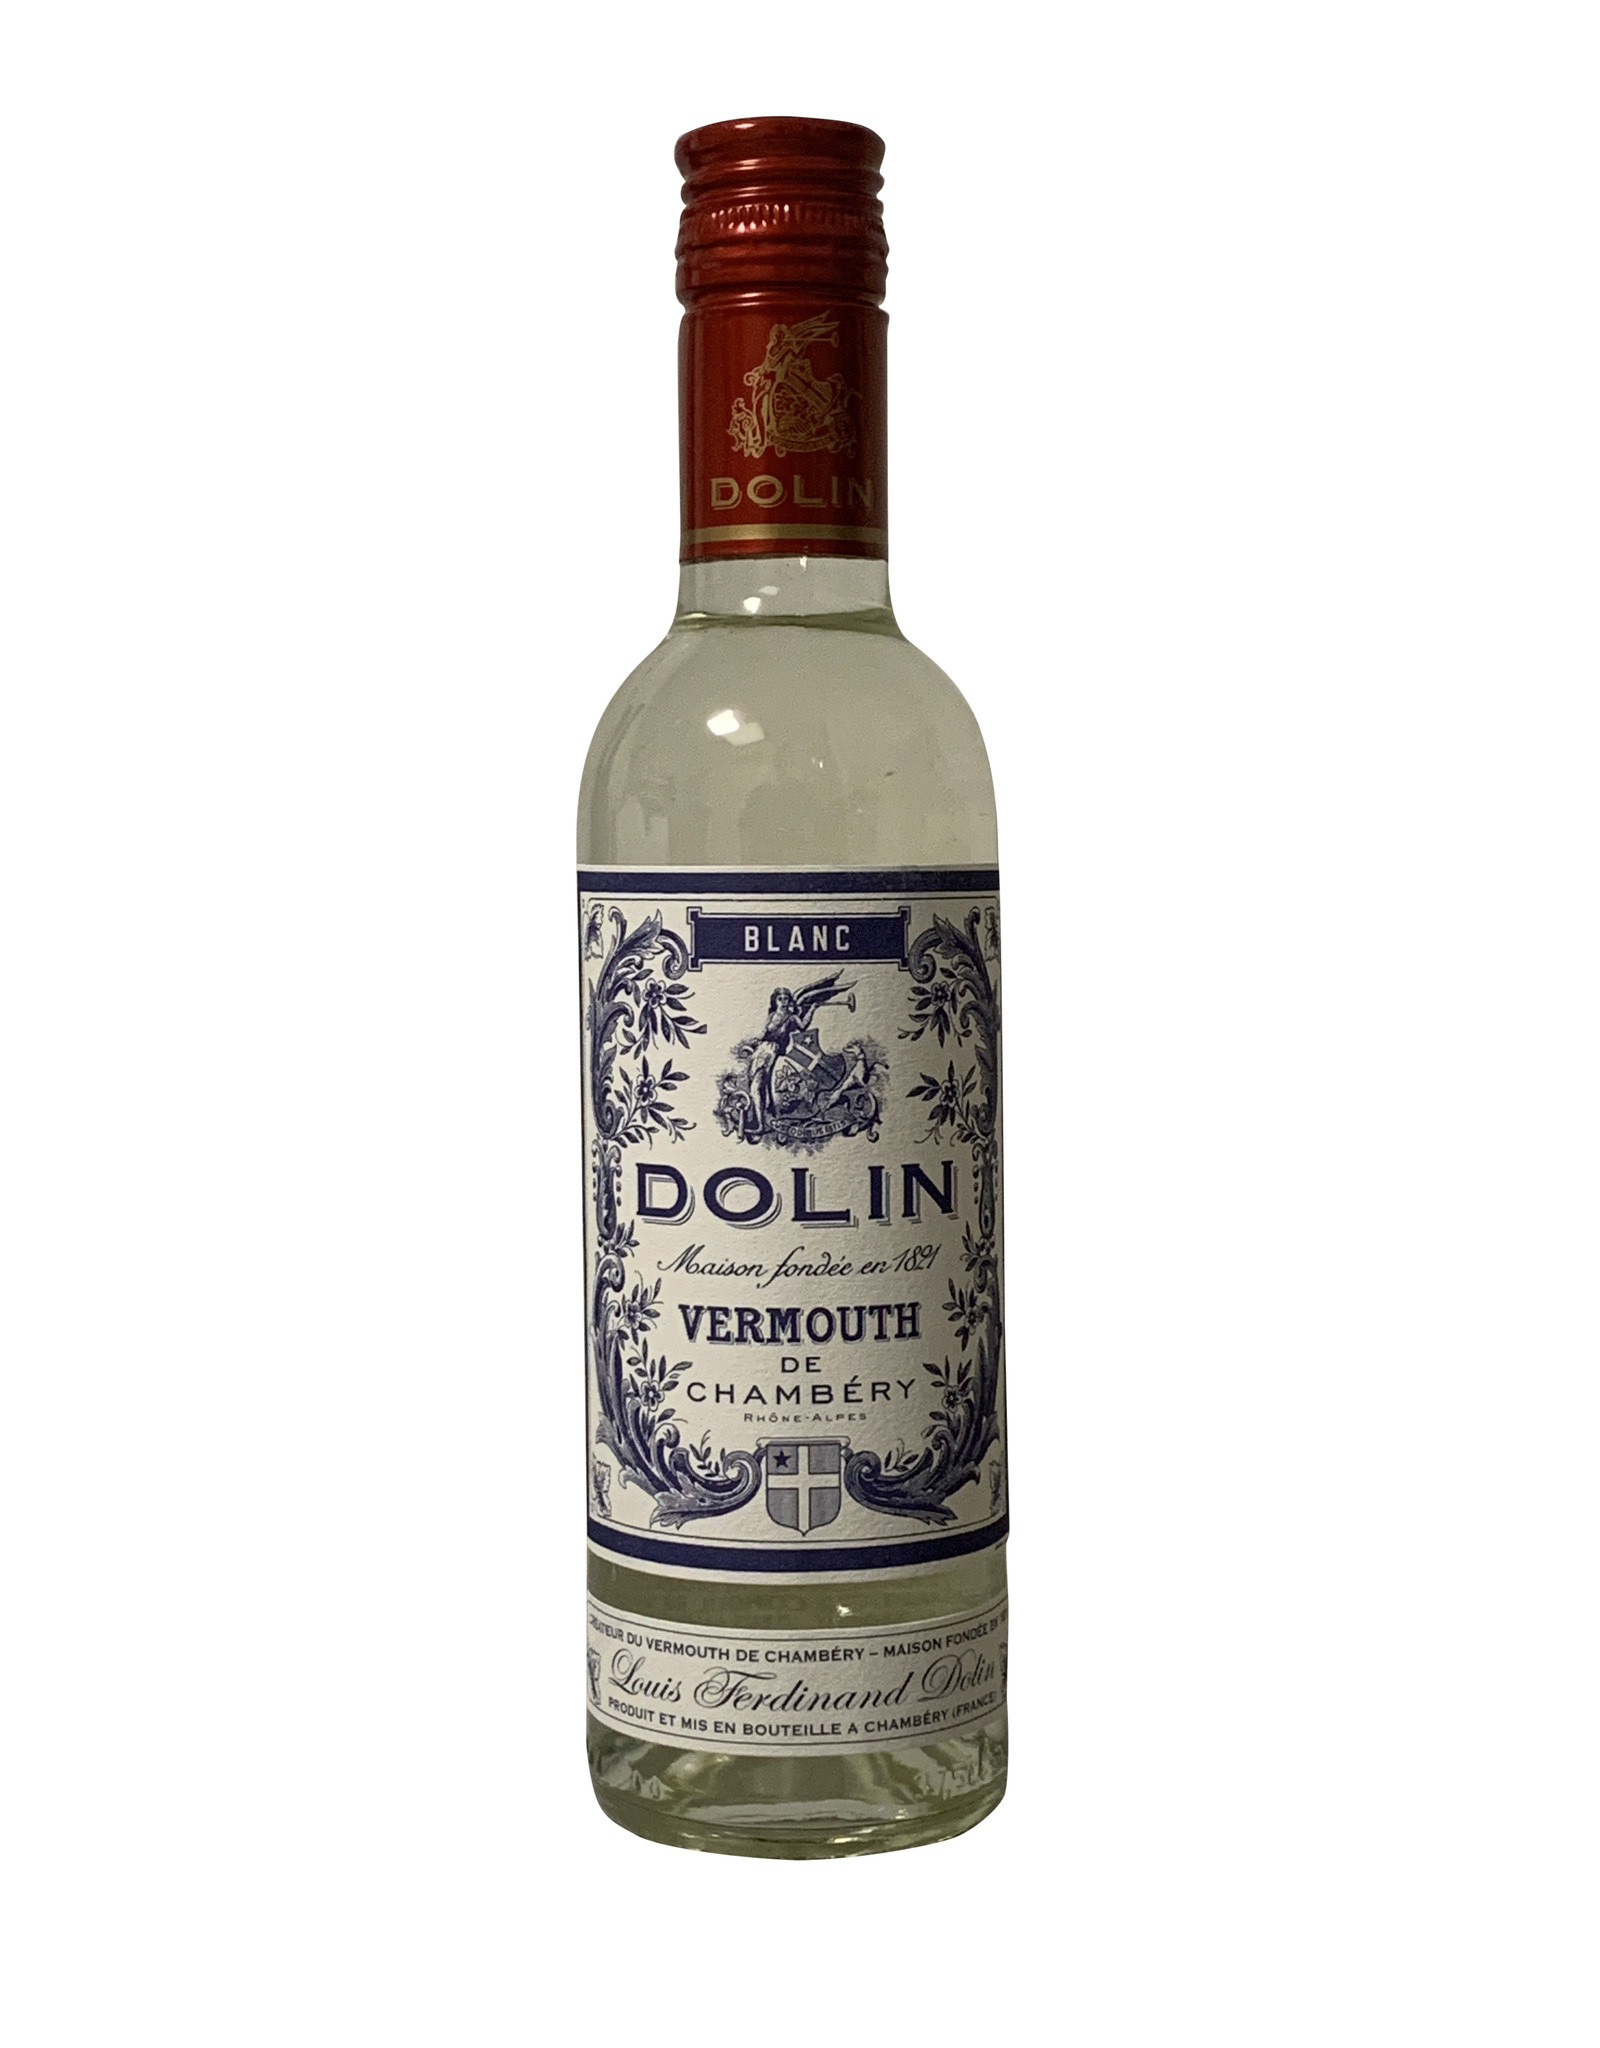 Dolin Dolin Vermouth de Chambéry Blanc, France (375ml)